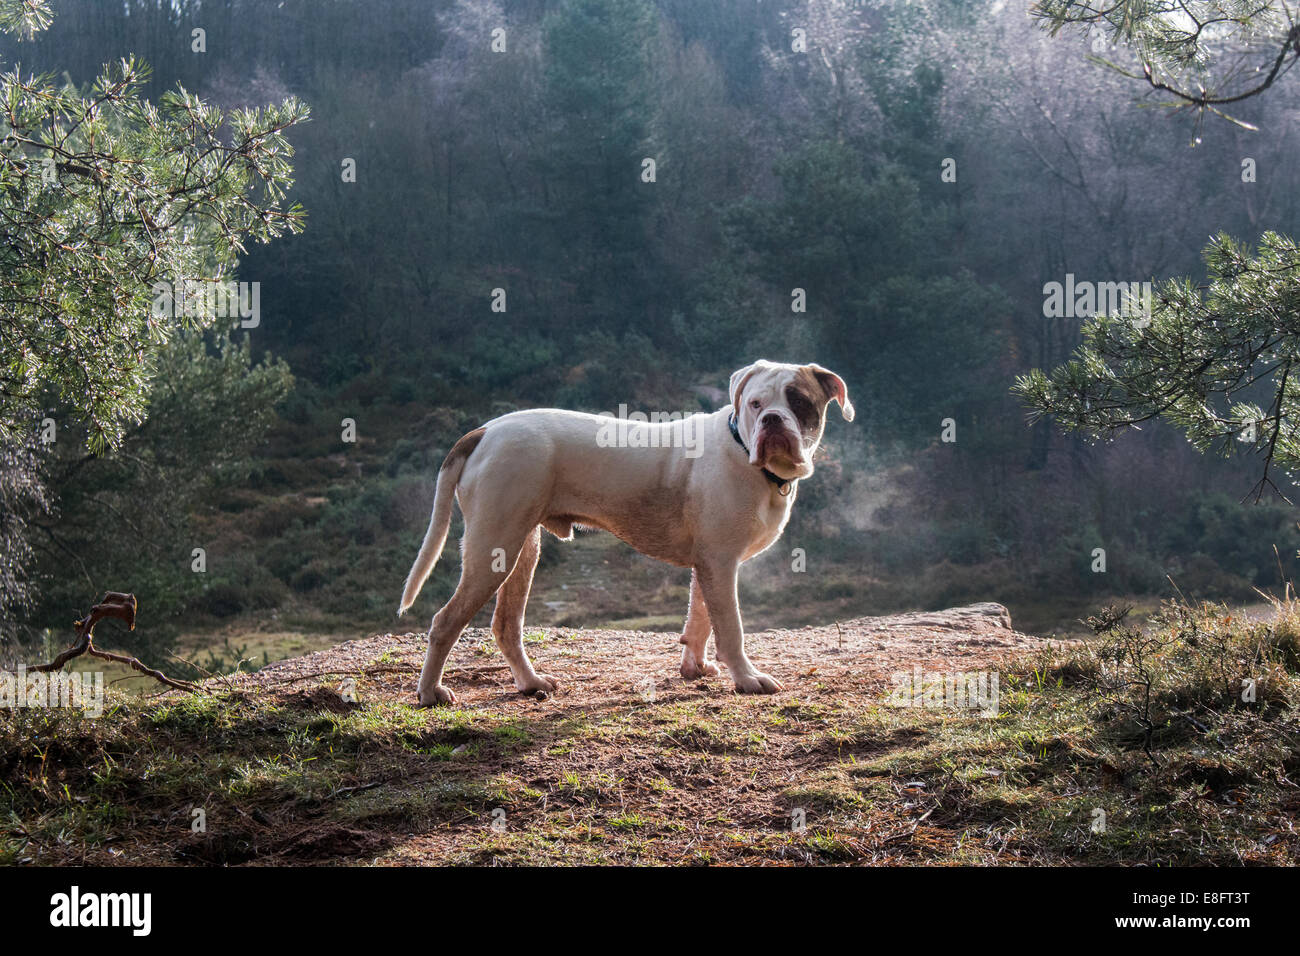 UK, England, West Midlands, Stoke-on-Trent, Old Tyme Bulldog at Park Hall in morning sunlight - Stock Image